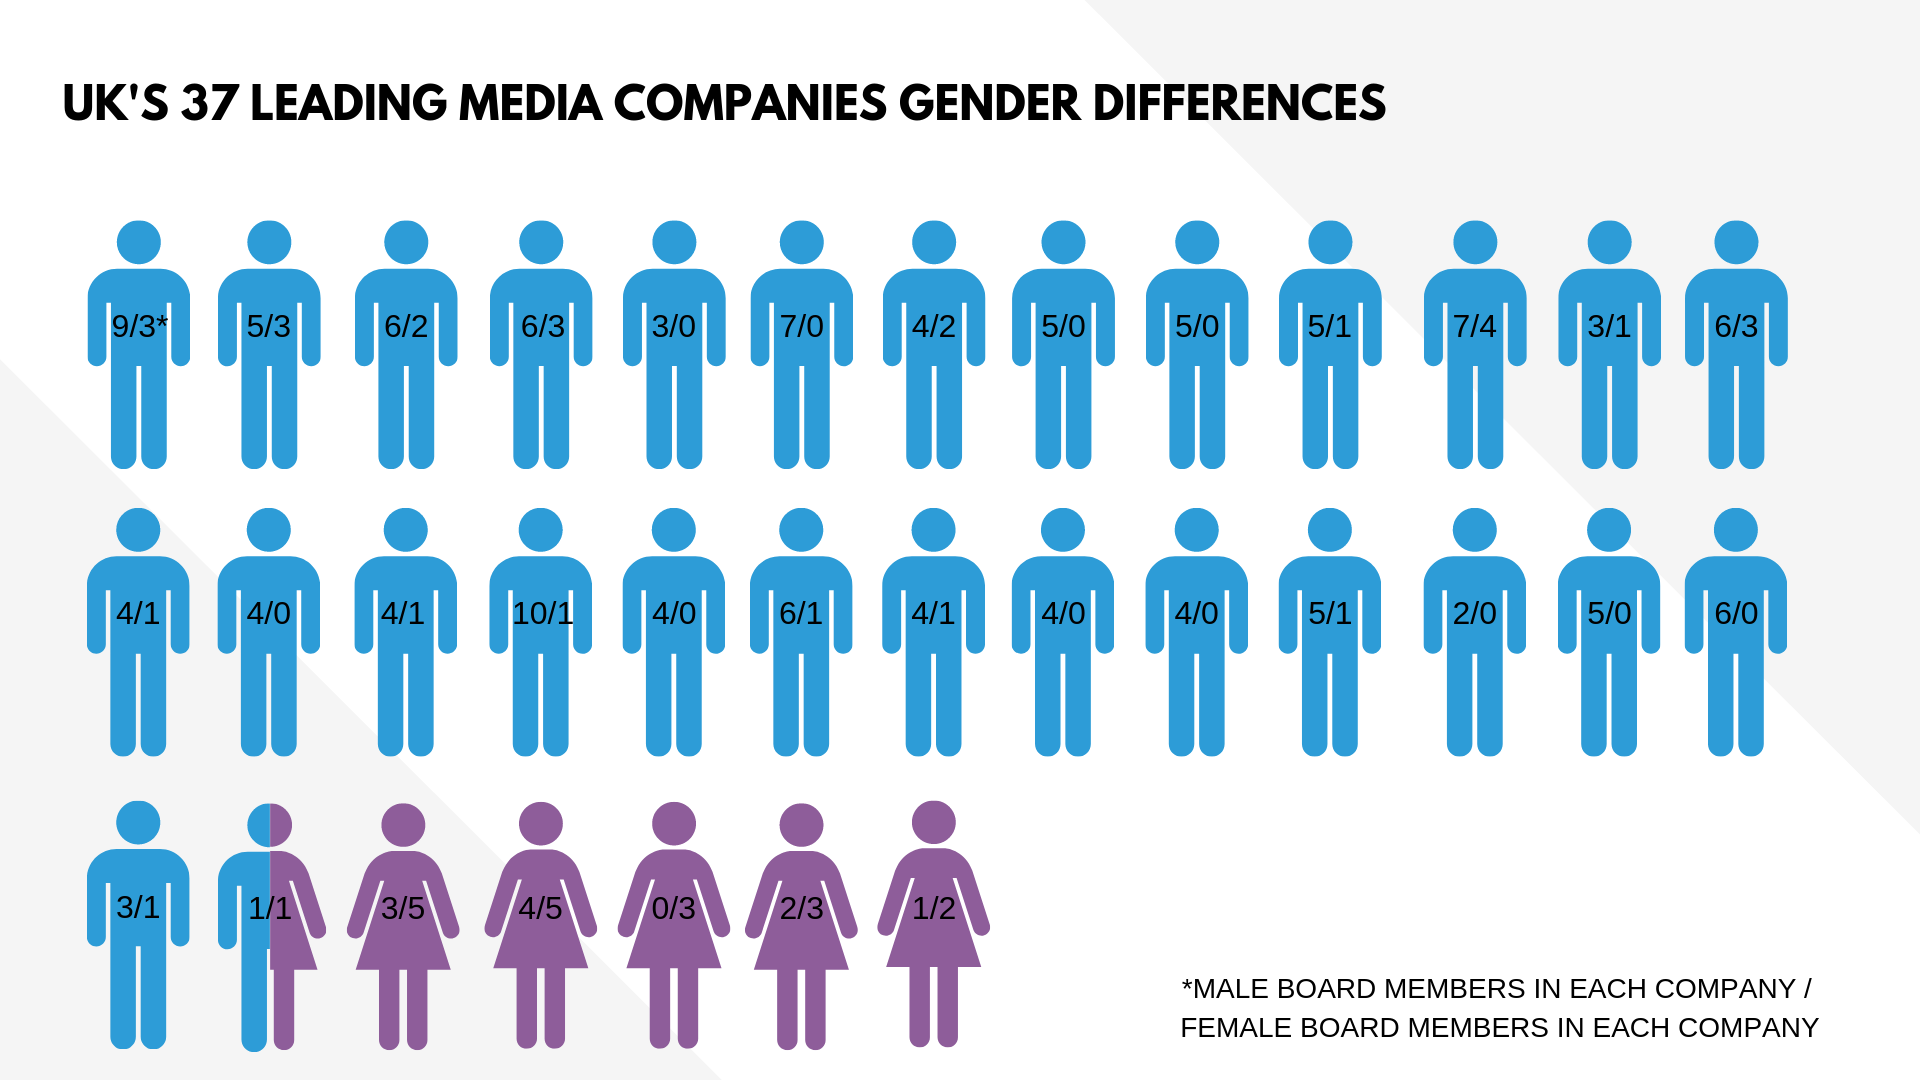 There are 27 of the companies researched that are male dominated